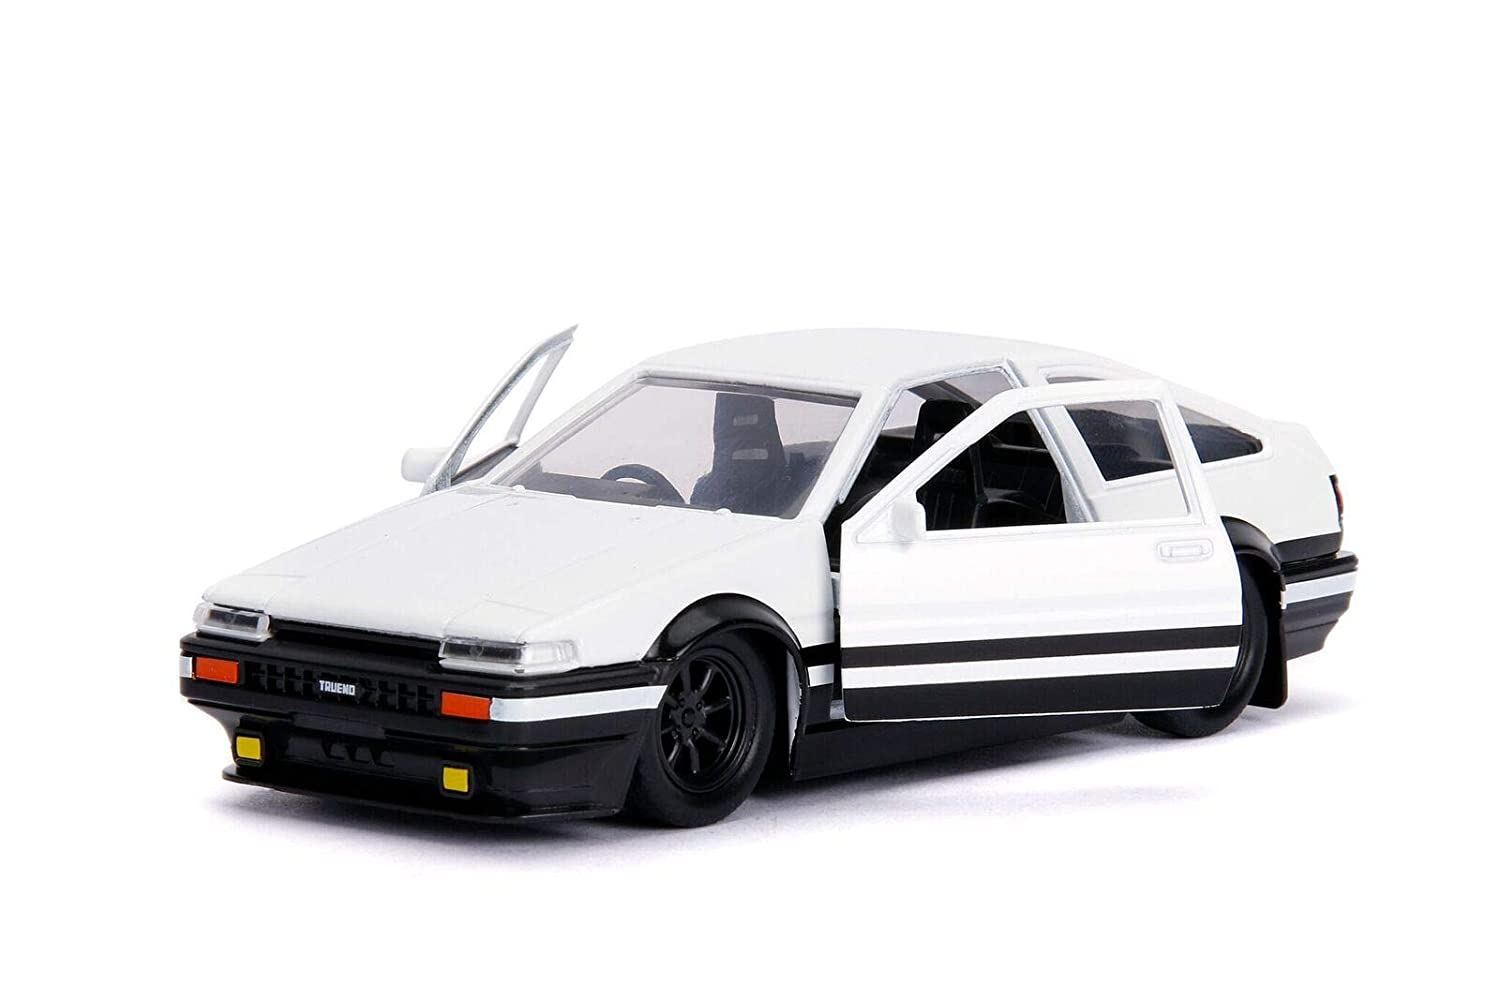 Jada Toyota Trueno Ae86 White Black Bottom Initial D First Stage 1998 TV Series Hollywood Rides Series 1 32 Diecast Model Car 99801